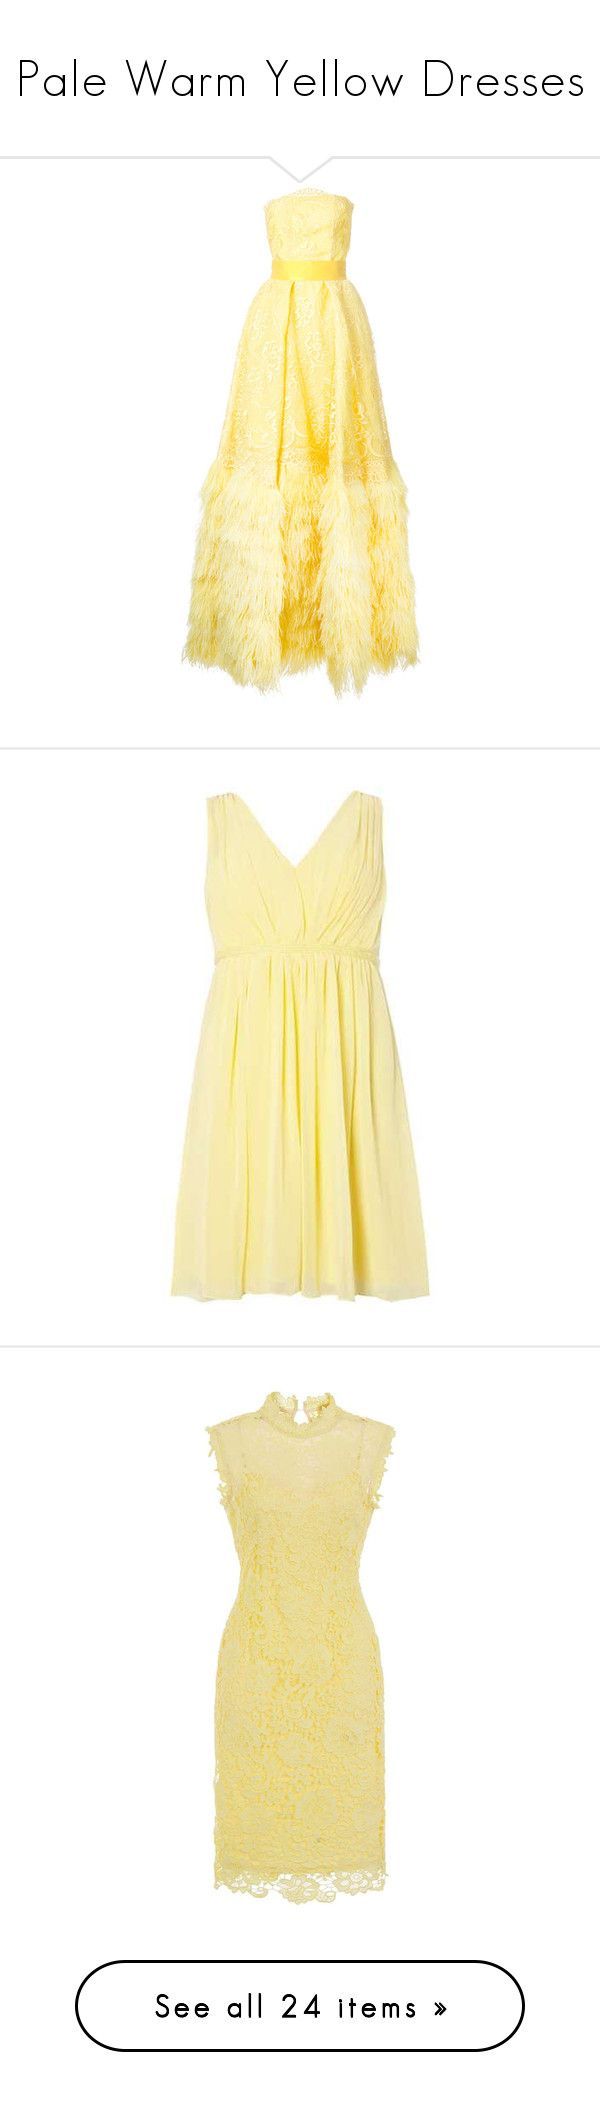 """Pale Warm Yellow Dresses"" by tegan-b-riley on Polyvore featuring dresses, gowns, yellow, floral two piece, beige cocktail dress, yellow cocktail dress, beige dress, chiffon cocktail dress, chiffon dress and lemon"